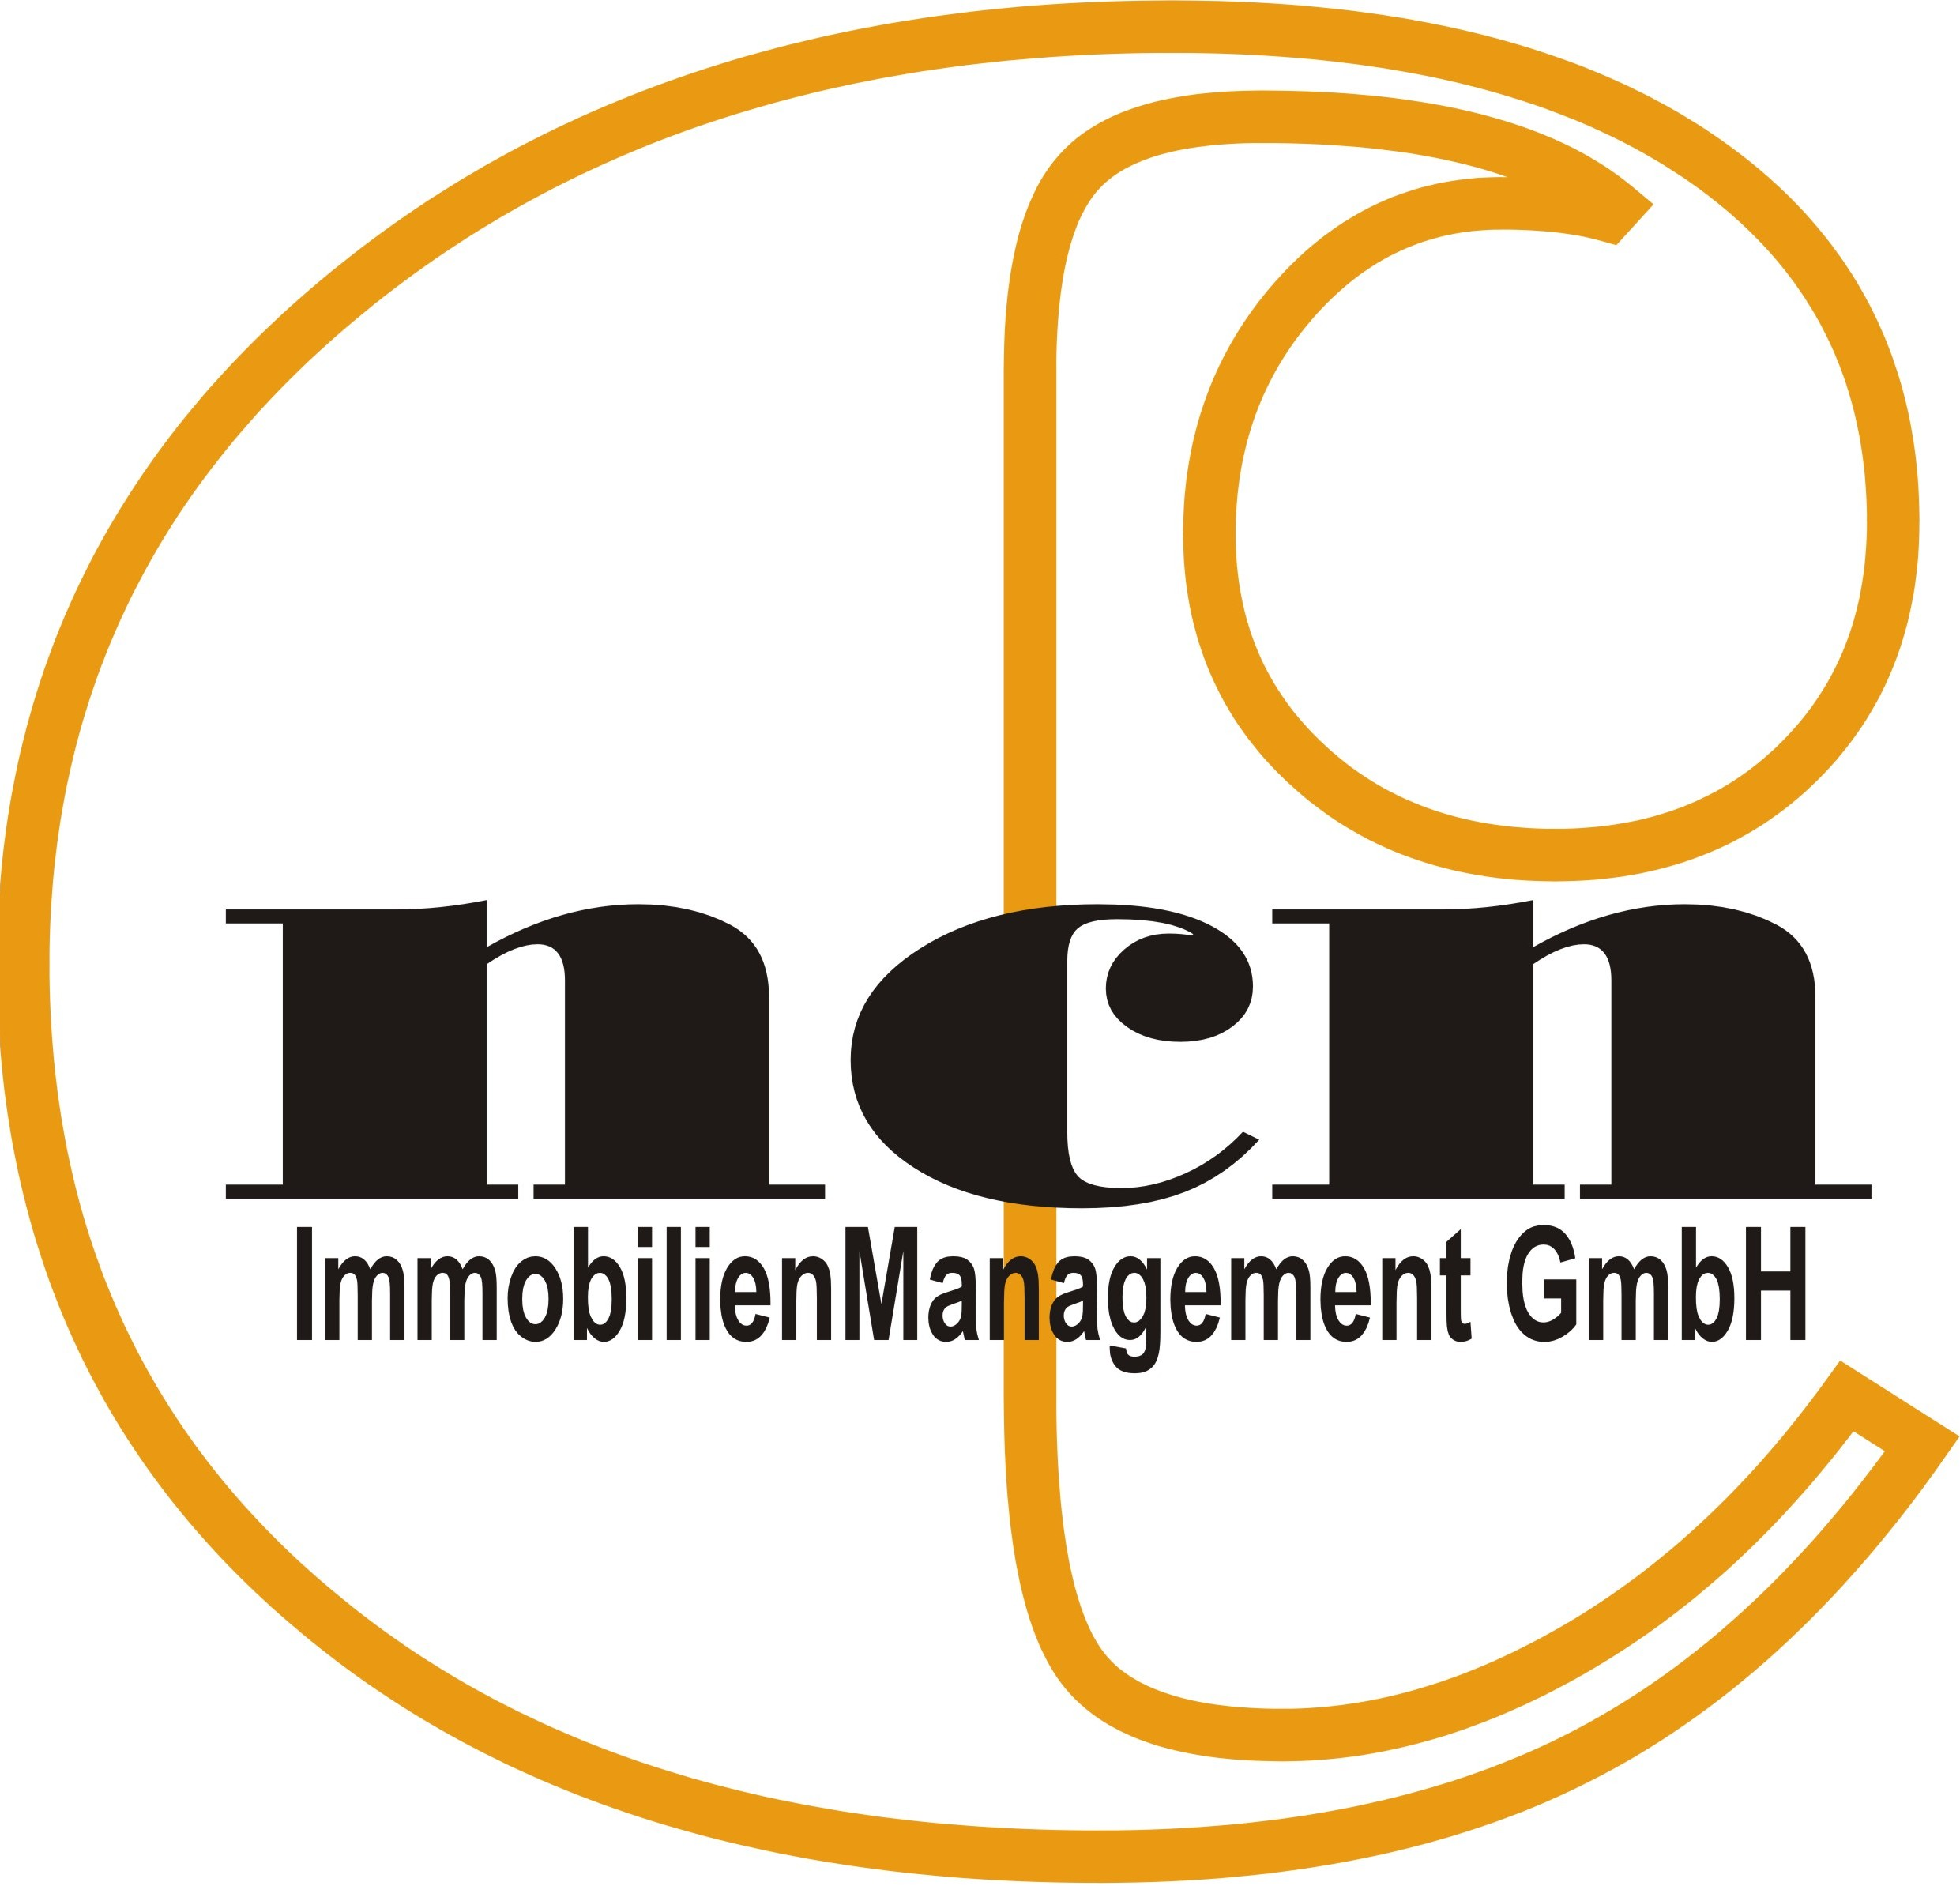 ncn ImmobilienManagement GmbH